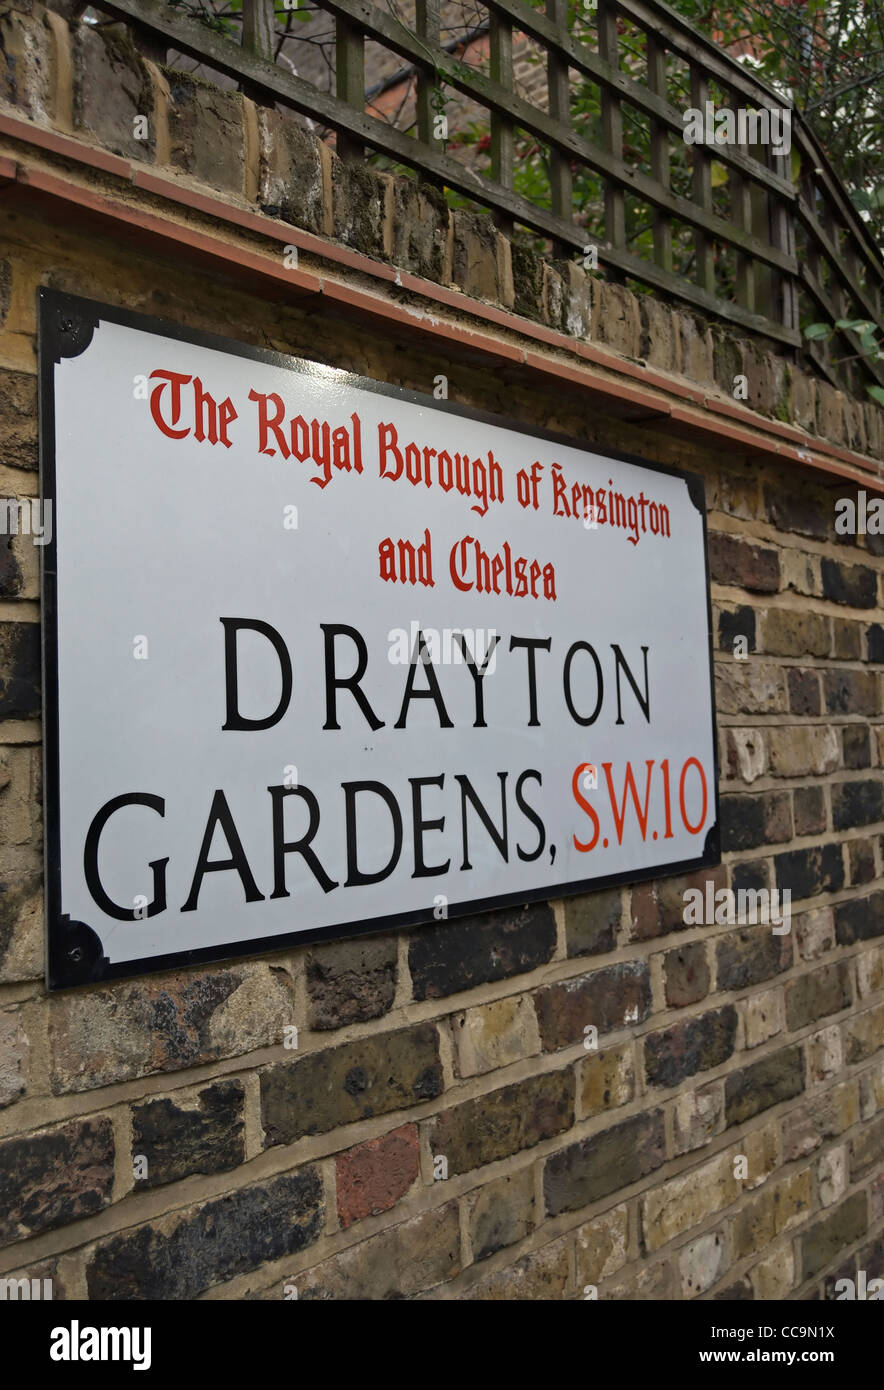 street name sign for drayton gardens, in the royal borough of kensington and chelsea, london, england Stock Photo